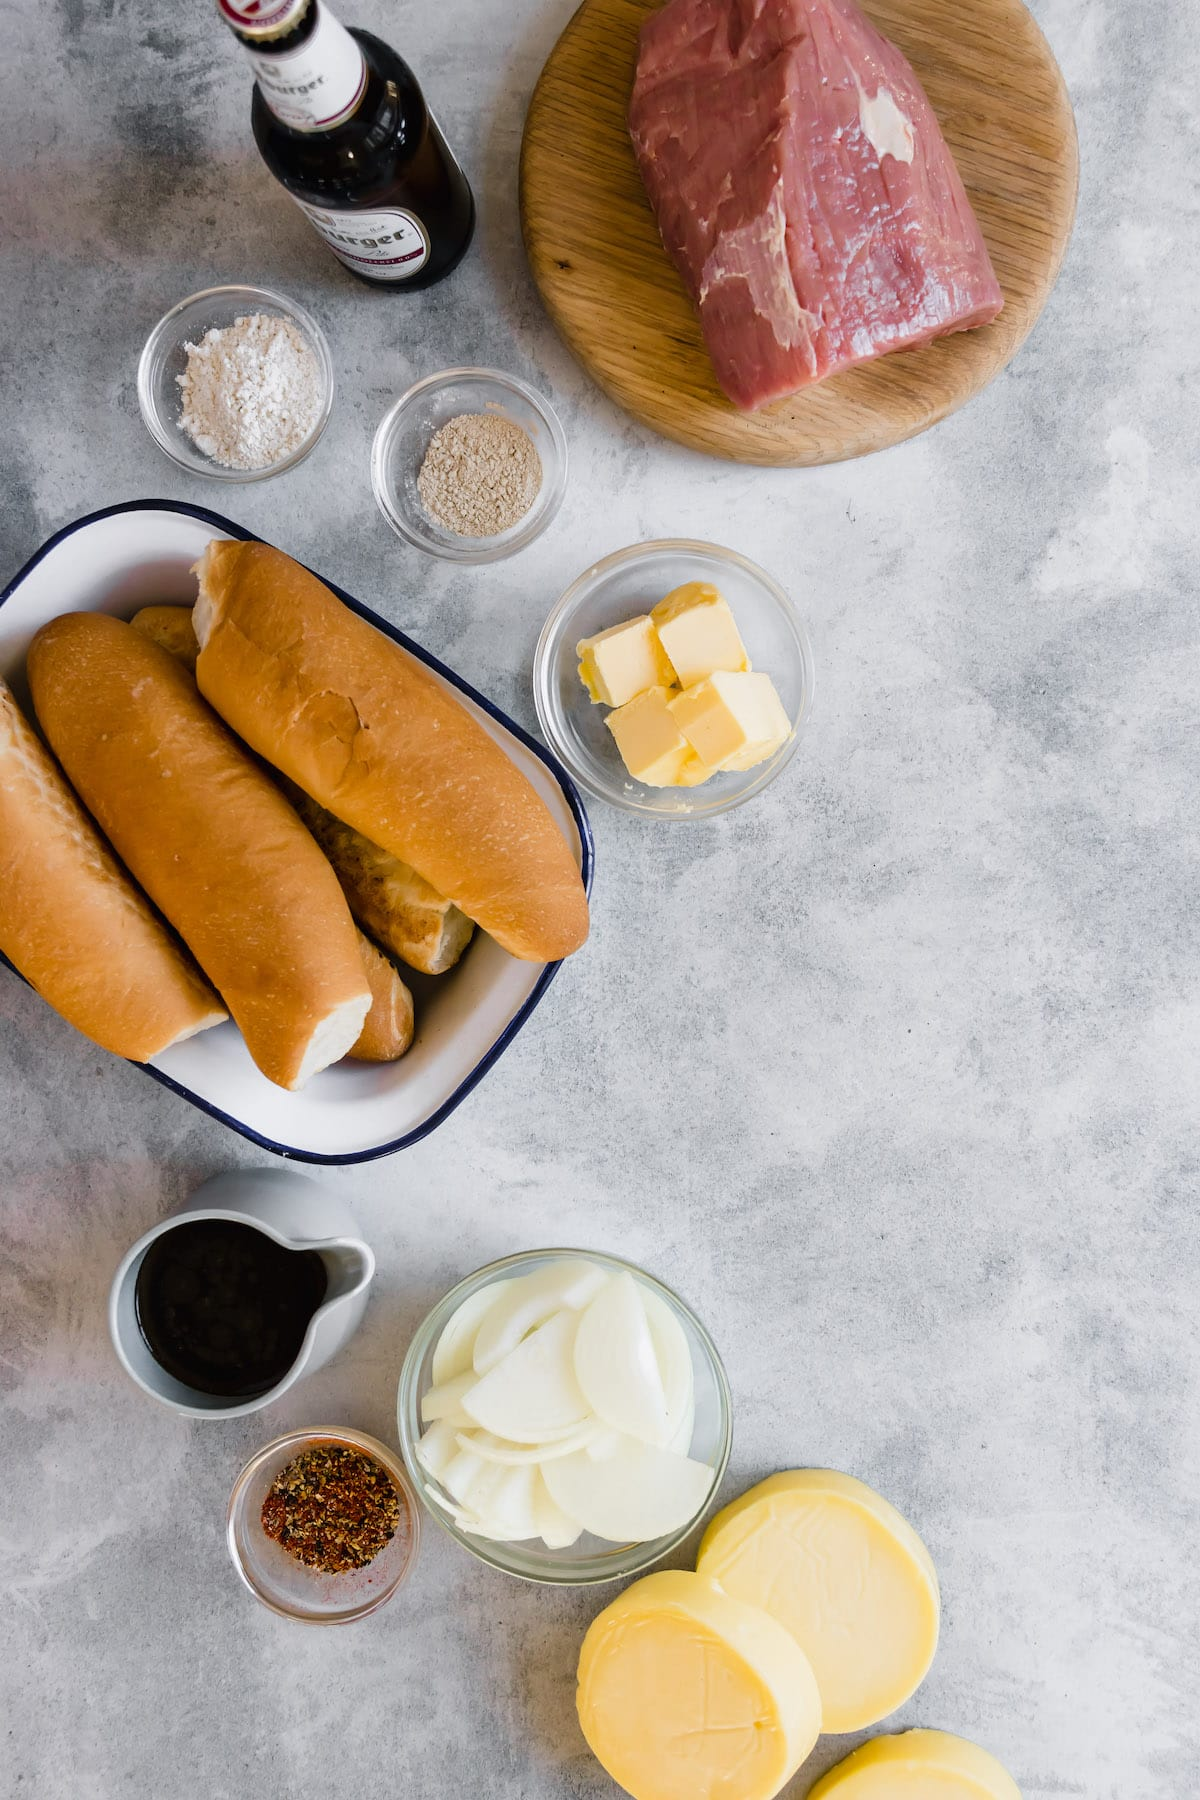 Ingredients for slow cooker French dip sandwiches.